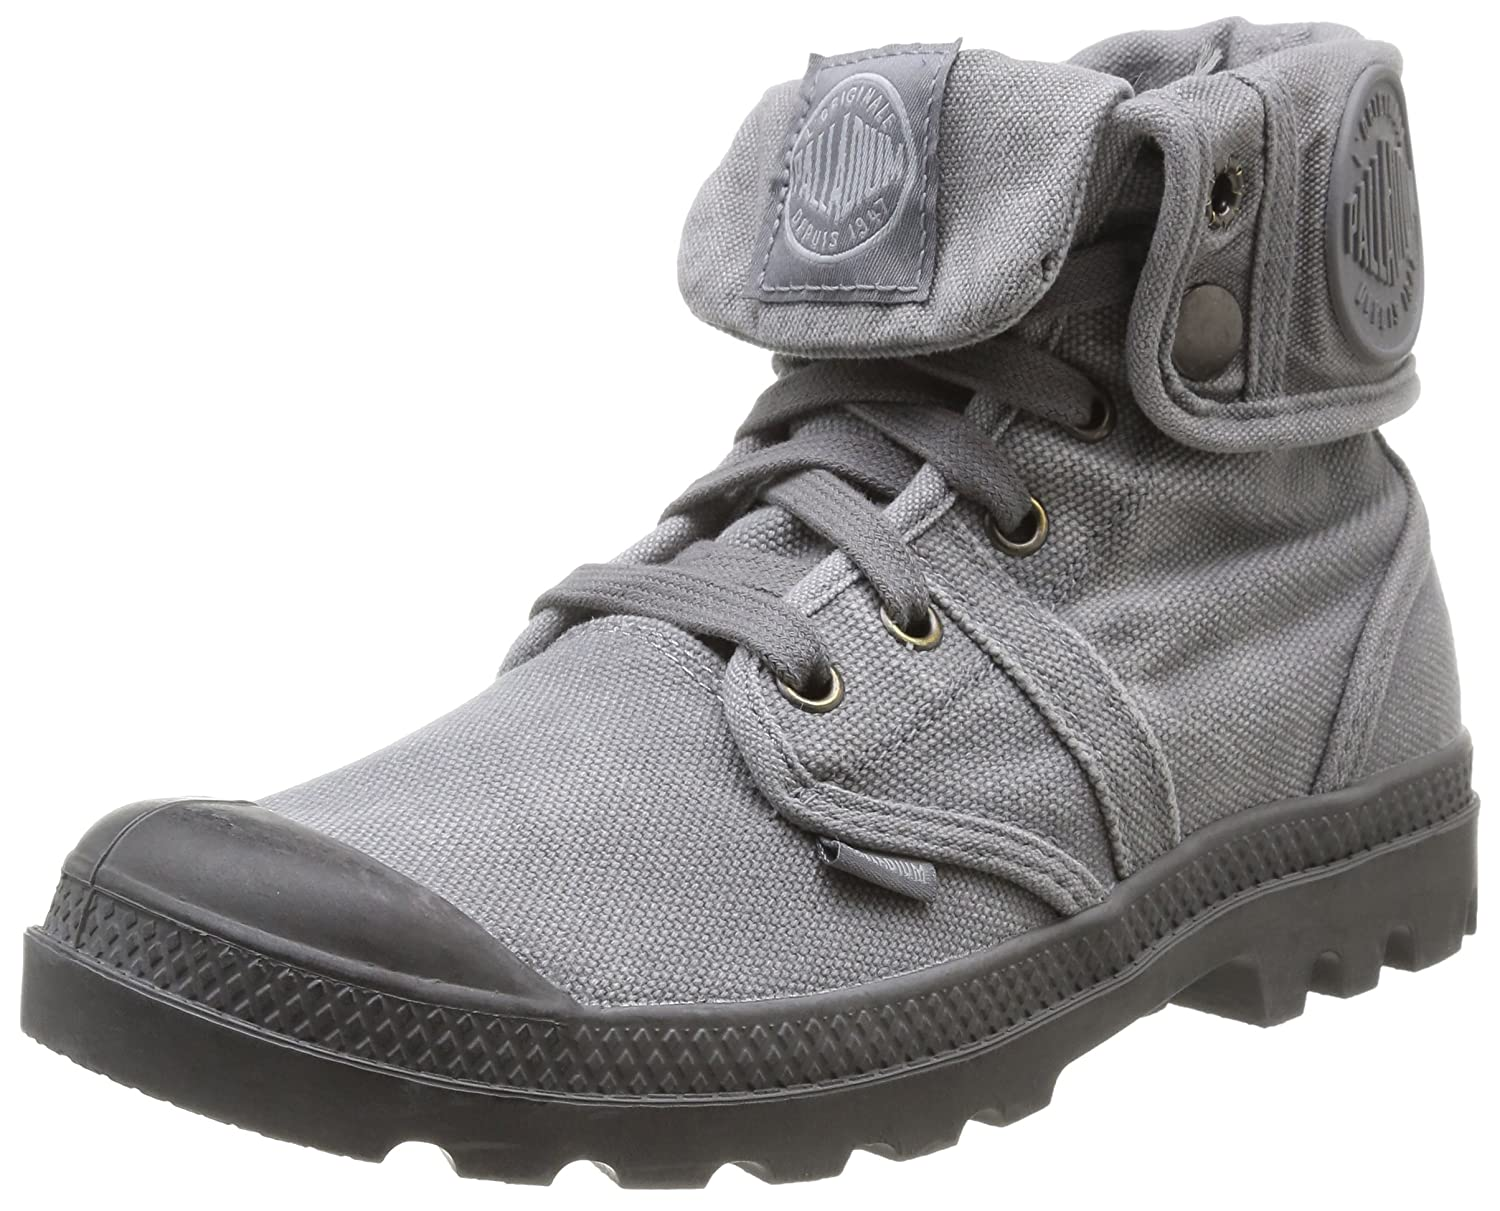 Palladium Gris Us Baggy Palladium W F, Baskets Hautes Hautes Femme Gris (Titanium/High Rise 174) 1c7554a - epictionpvp.space